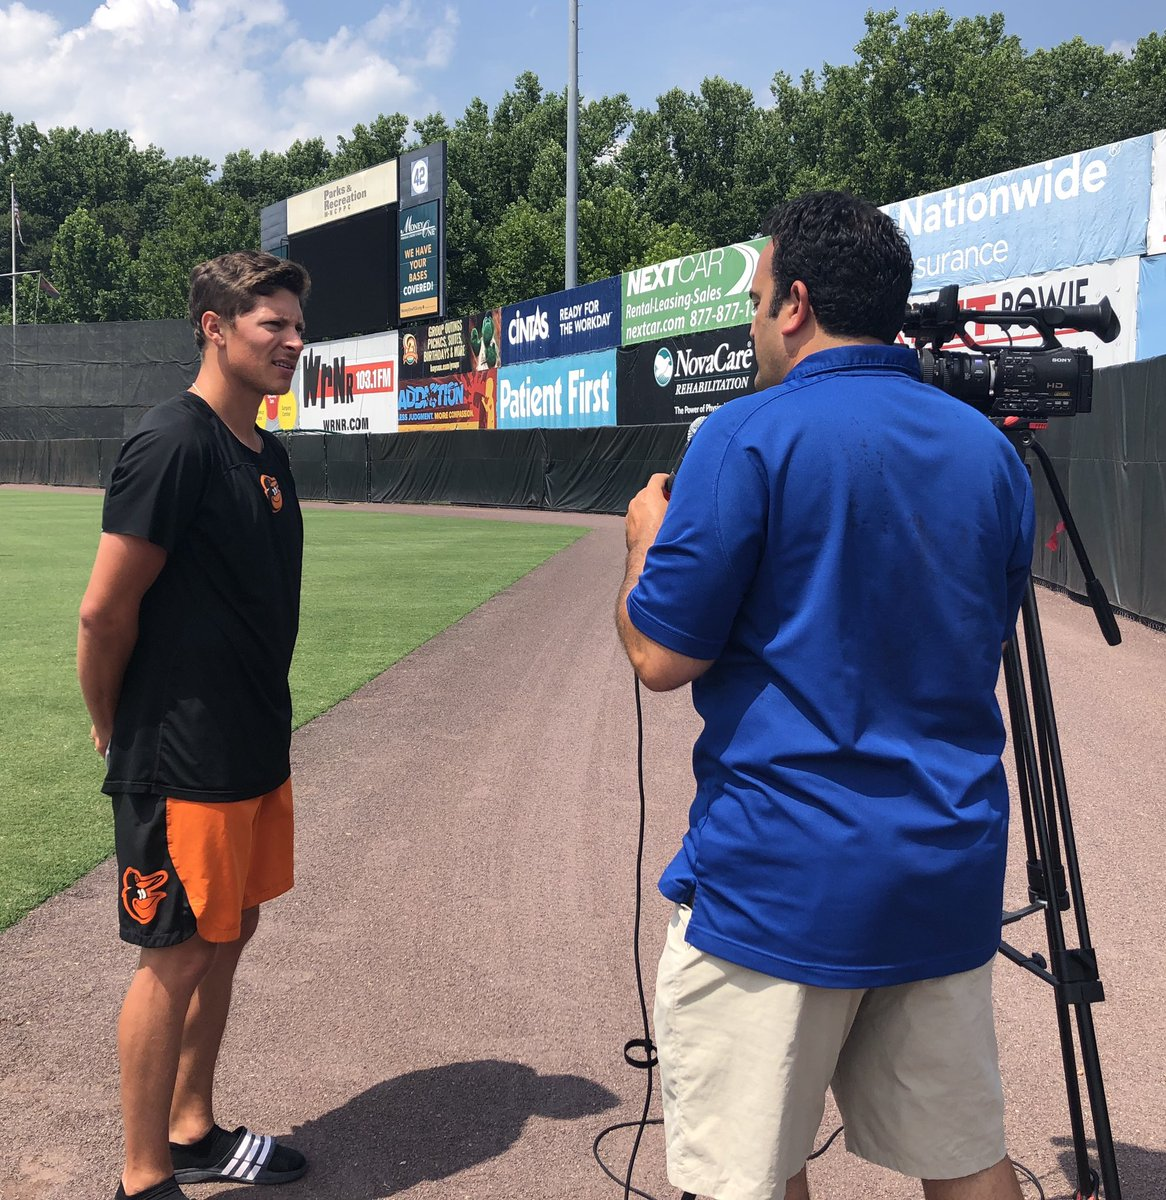 Last night the @BowieBaysox defeated the @AltoonaCurve 1-0 in a pitchers dual.  See the action and hear from the #Baysox players about the rest of the very hot weekend series with the #Curve tonight on @PGCTV sports. #Birdland @Orioles